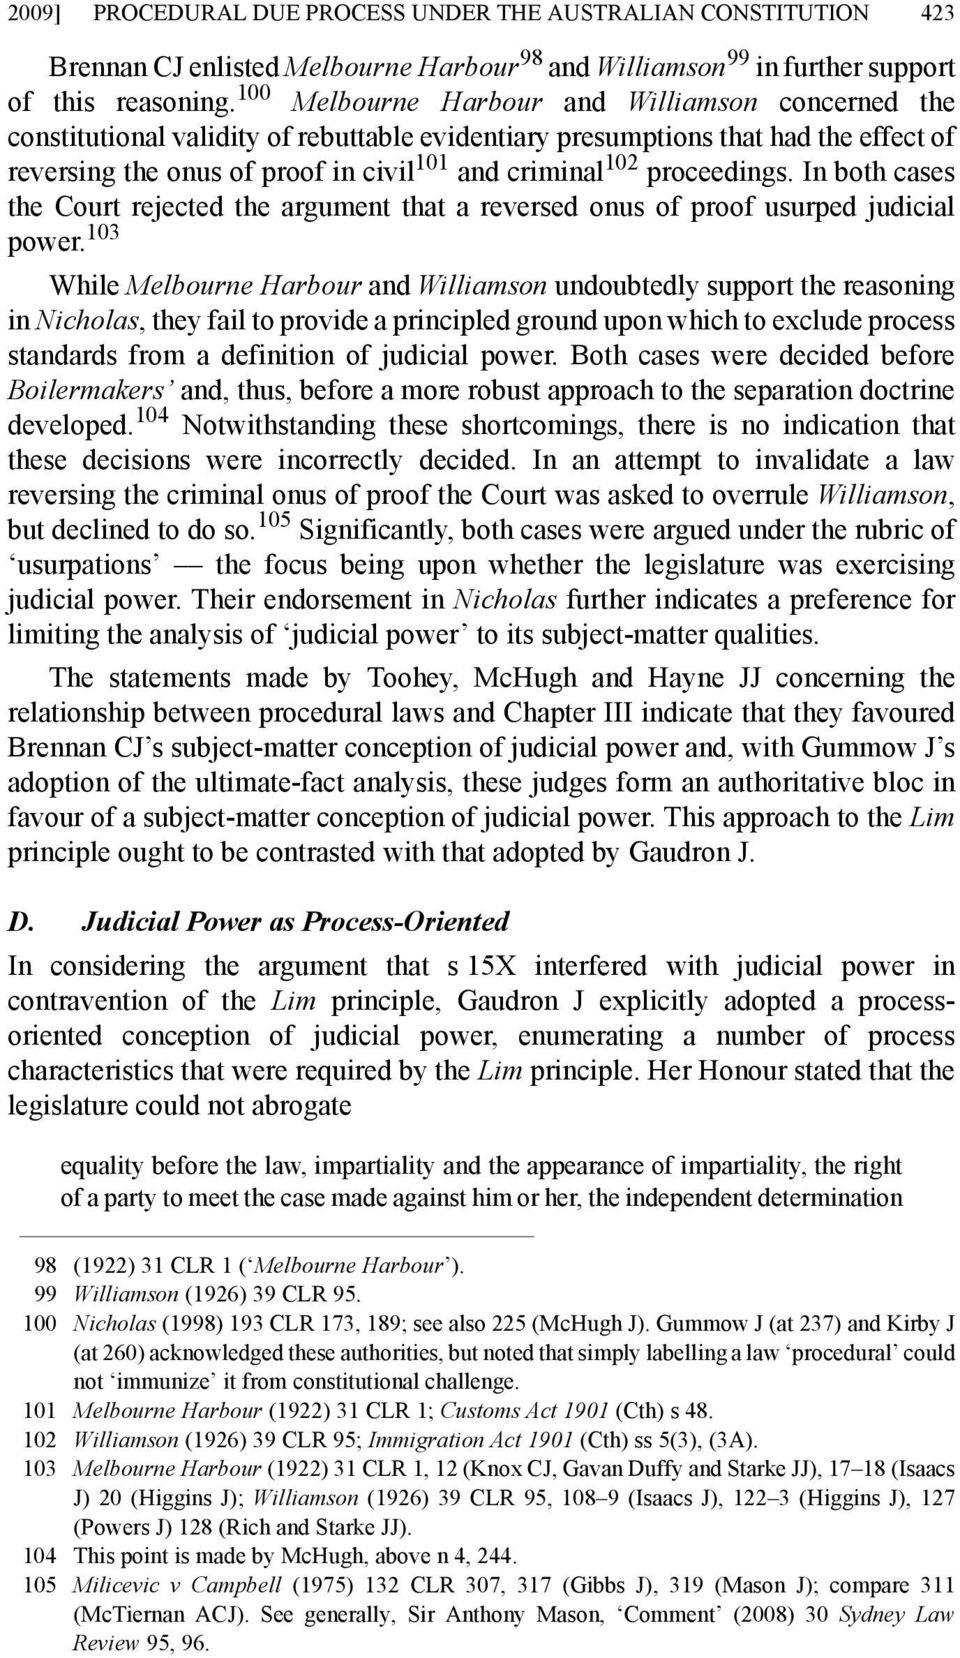 proceedings. In both cases the Court rejected the argument that a reversed onus of proof usurped judicial power.